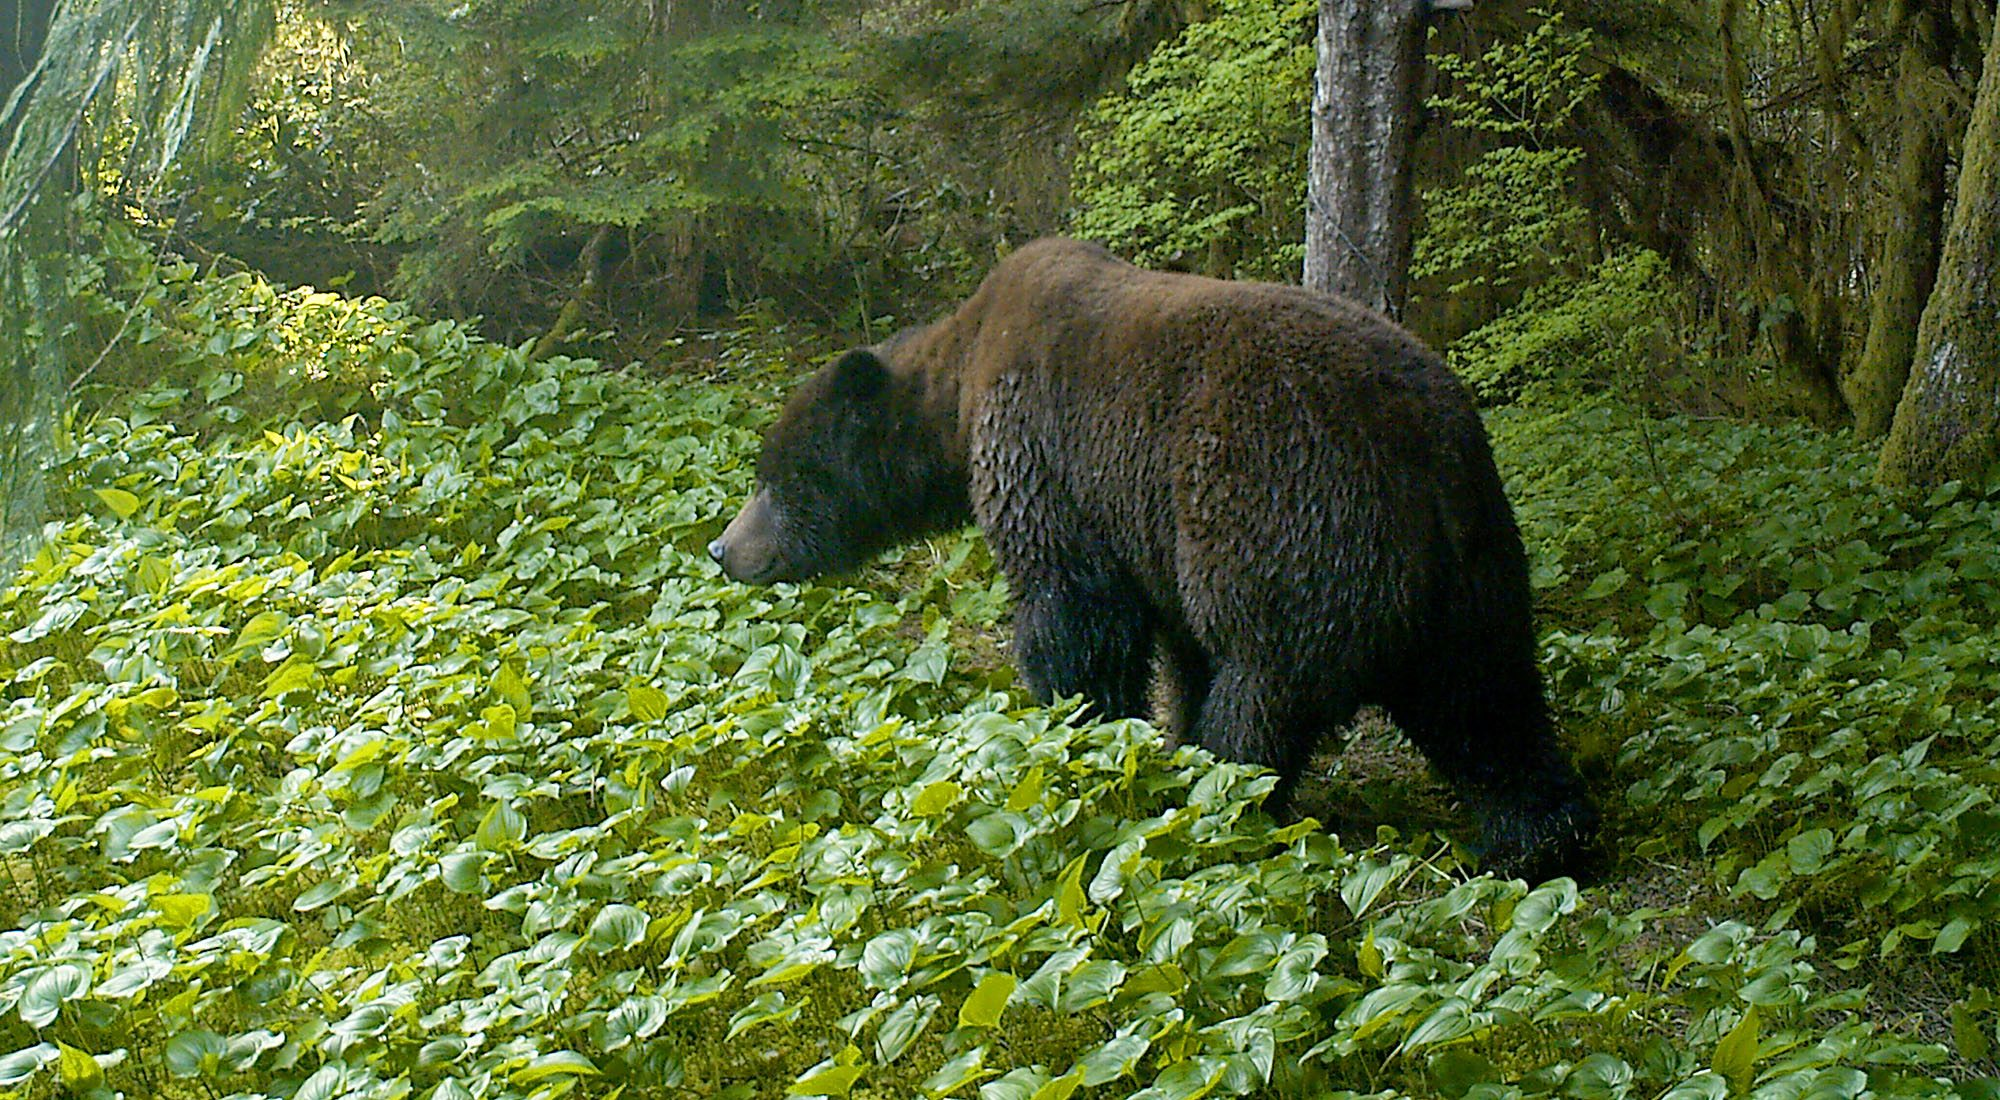 This grizzly was picked up via remote camera on conservation lands in Rivers Inlet in the Great Bear Rainforest. (Nature Conservancy of Canada)